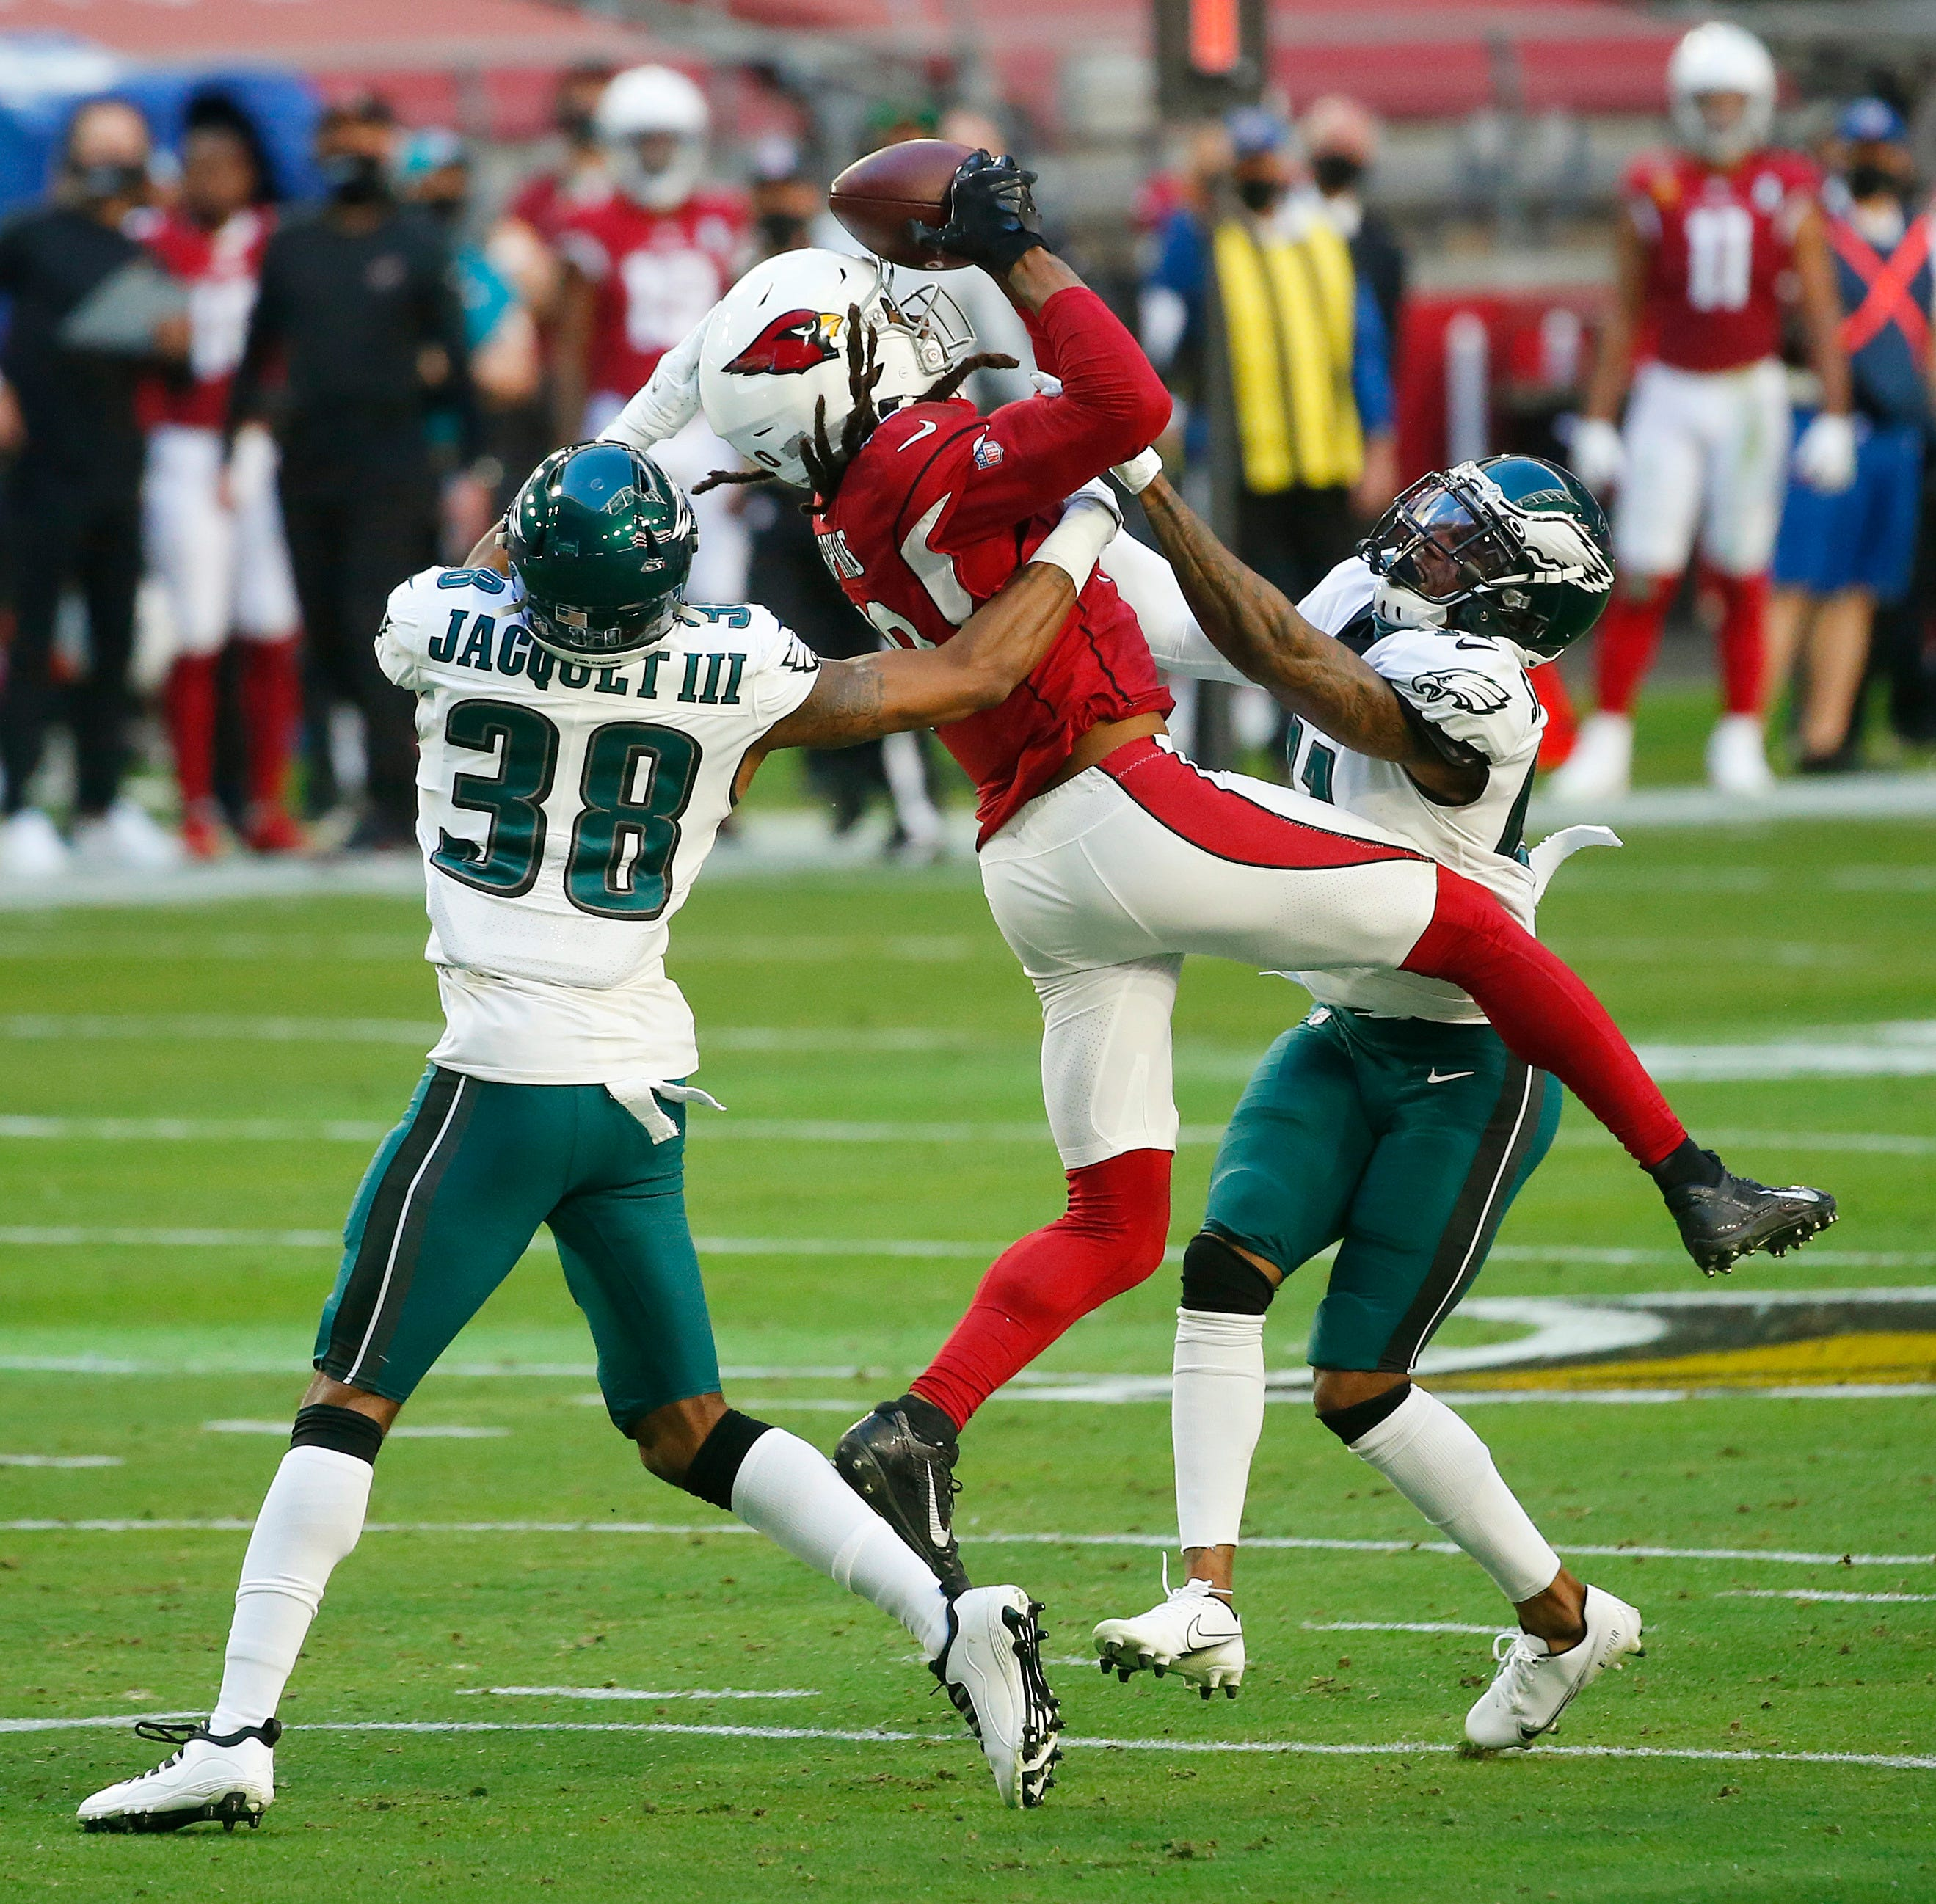 Cardinals WR DeAndre Hopkins practices when he wants, doesn't care what you  think